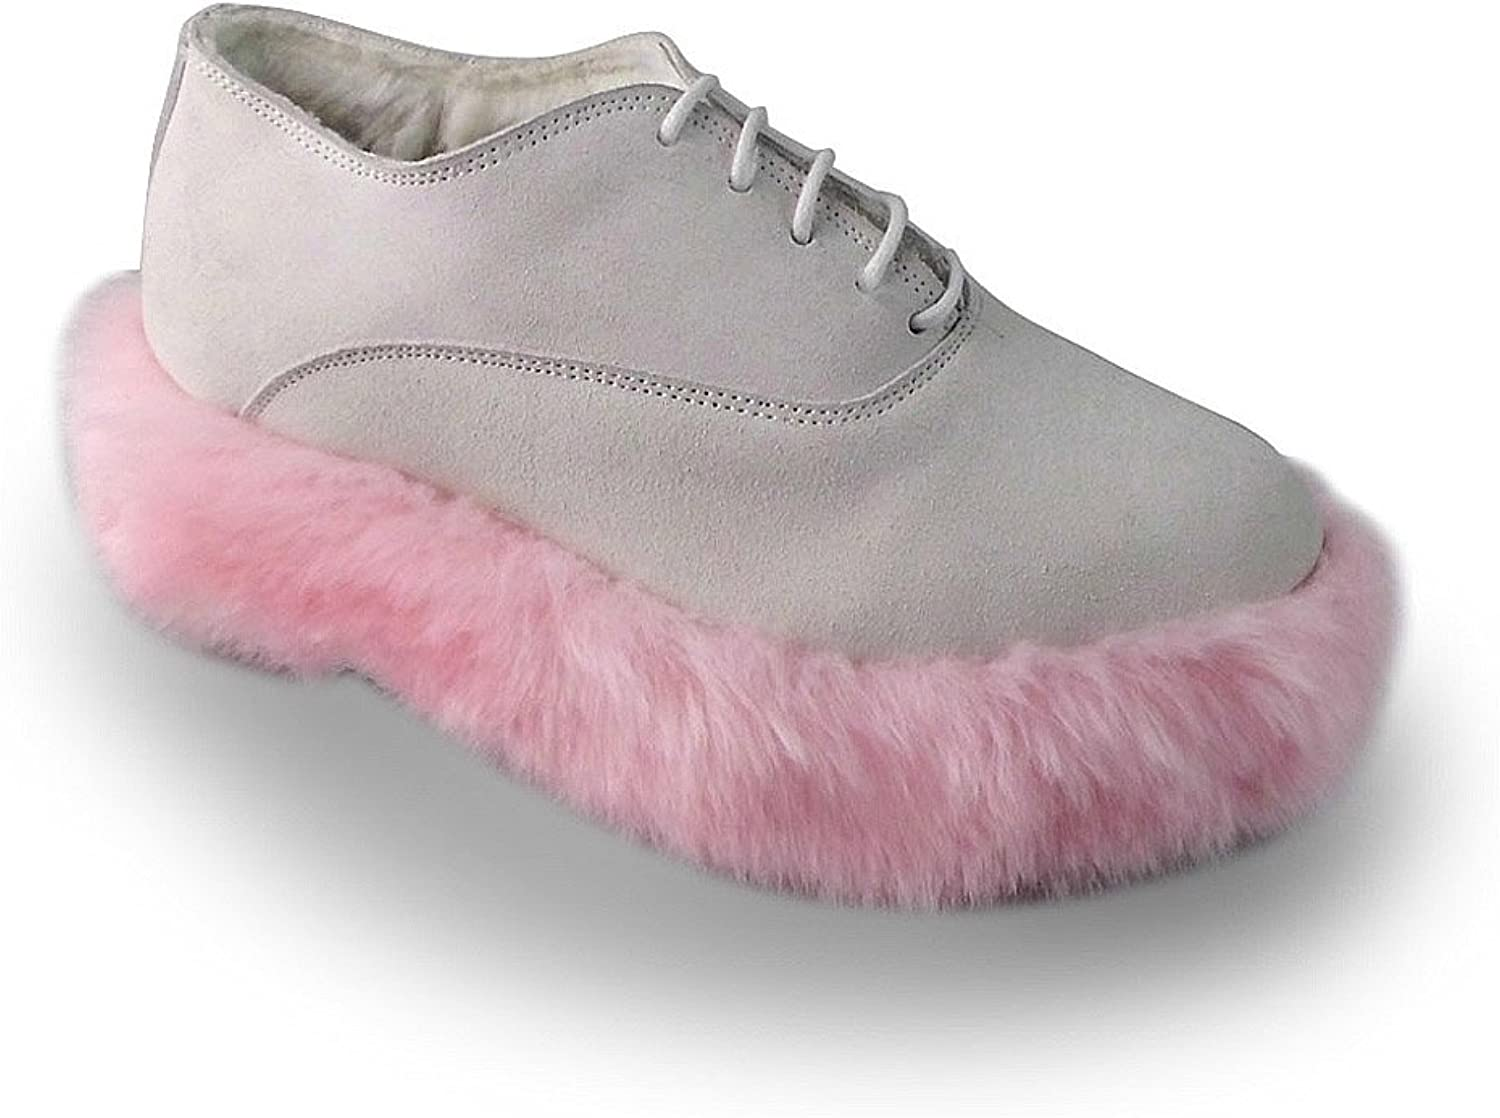 Antaina Mid Heel White PU Pink Hairy Soles Personality Lolita Platform shoes